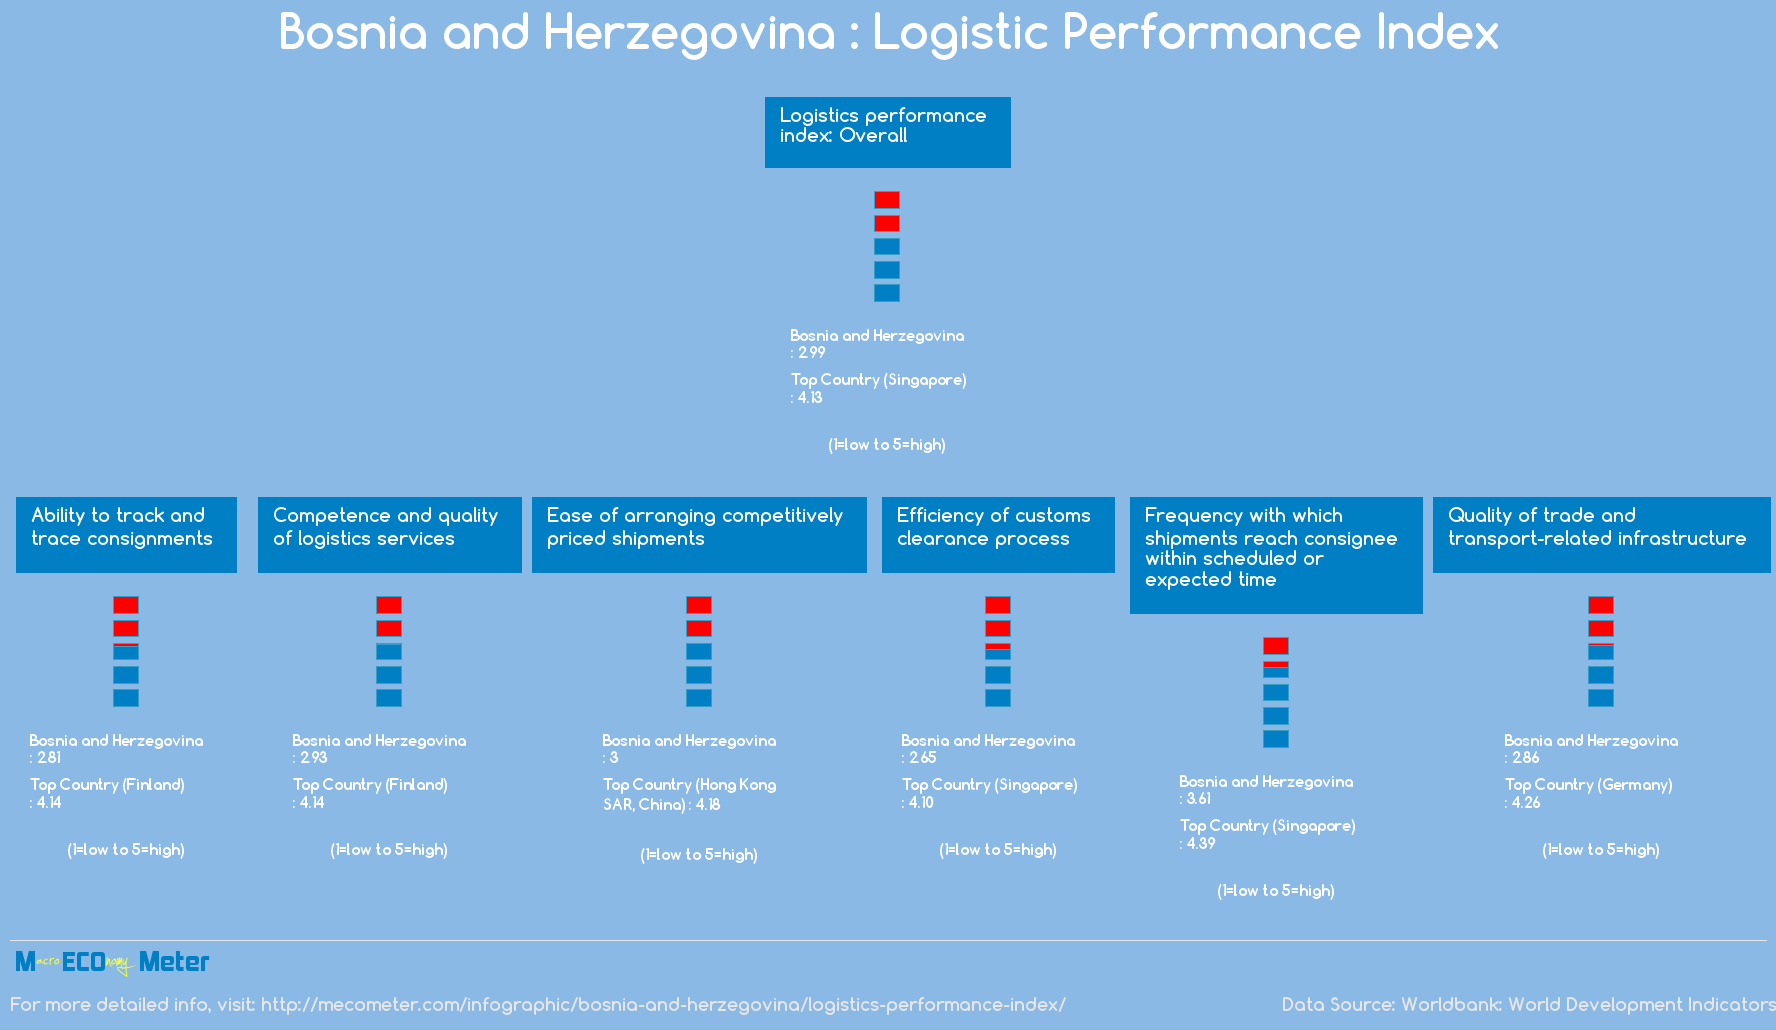 Bosnia and Herzegovina : Logistic Performance Index